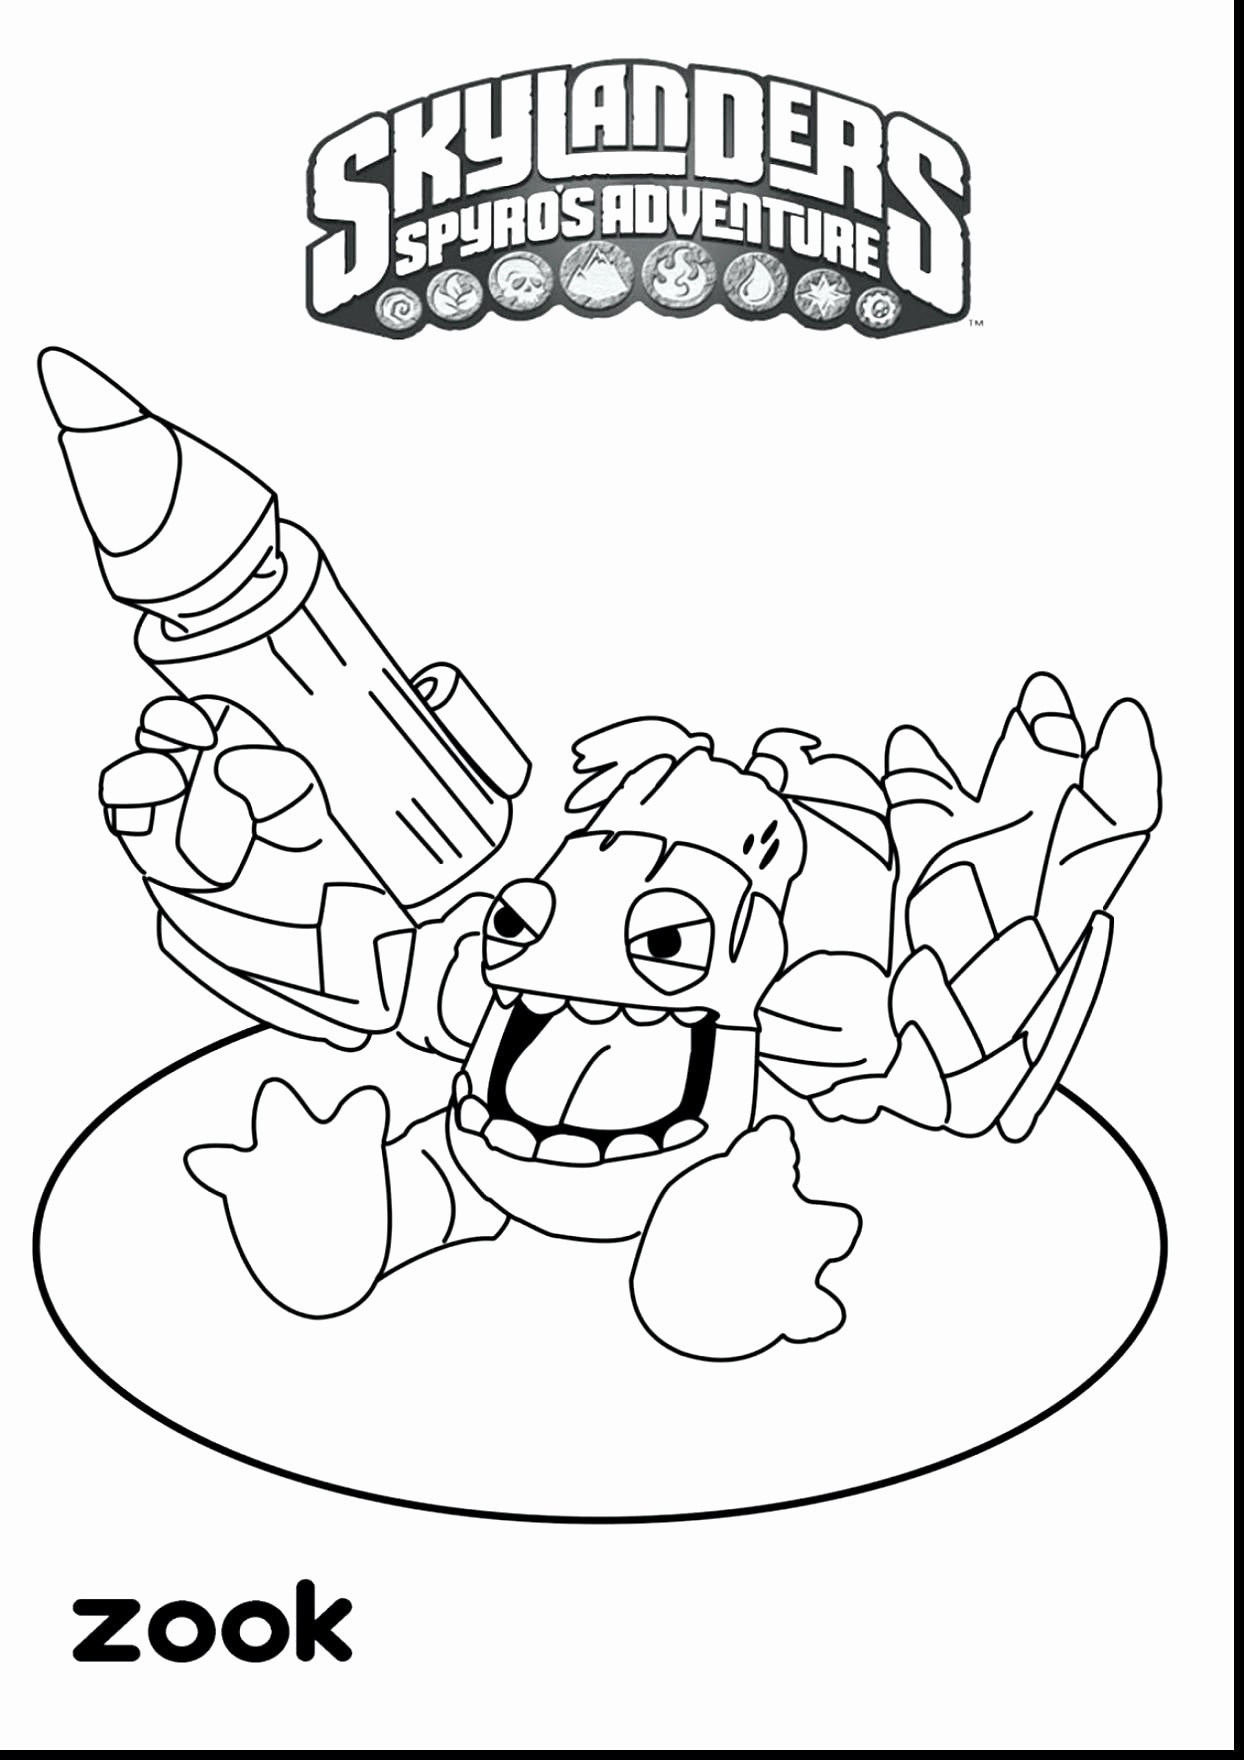 Hipster Coloring Pages - 14 Unique the Incredibles Coloring Pages